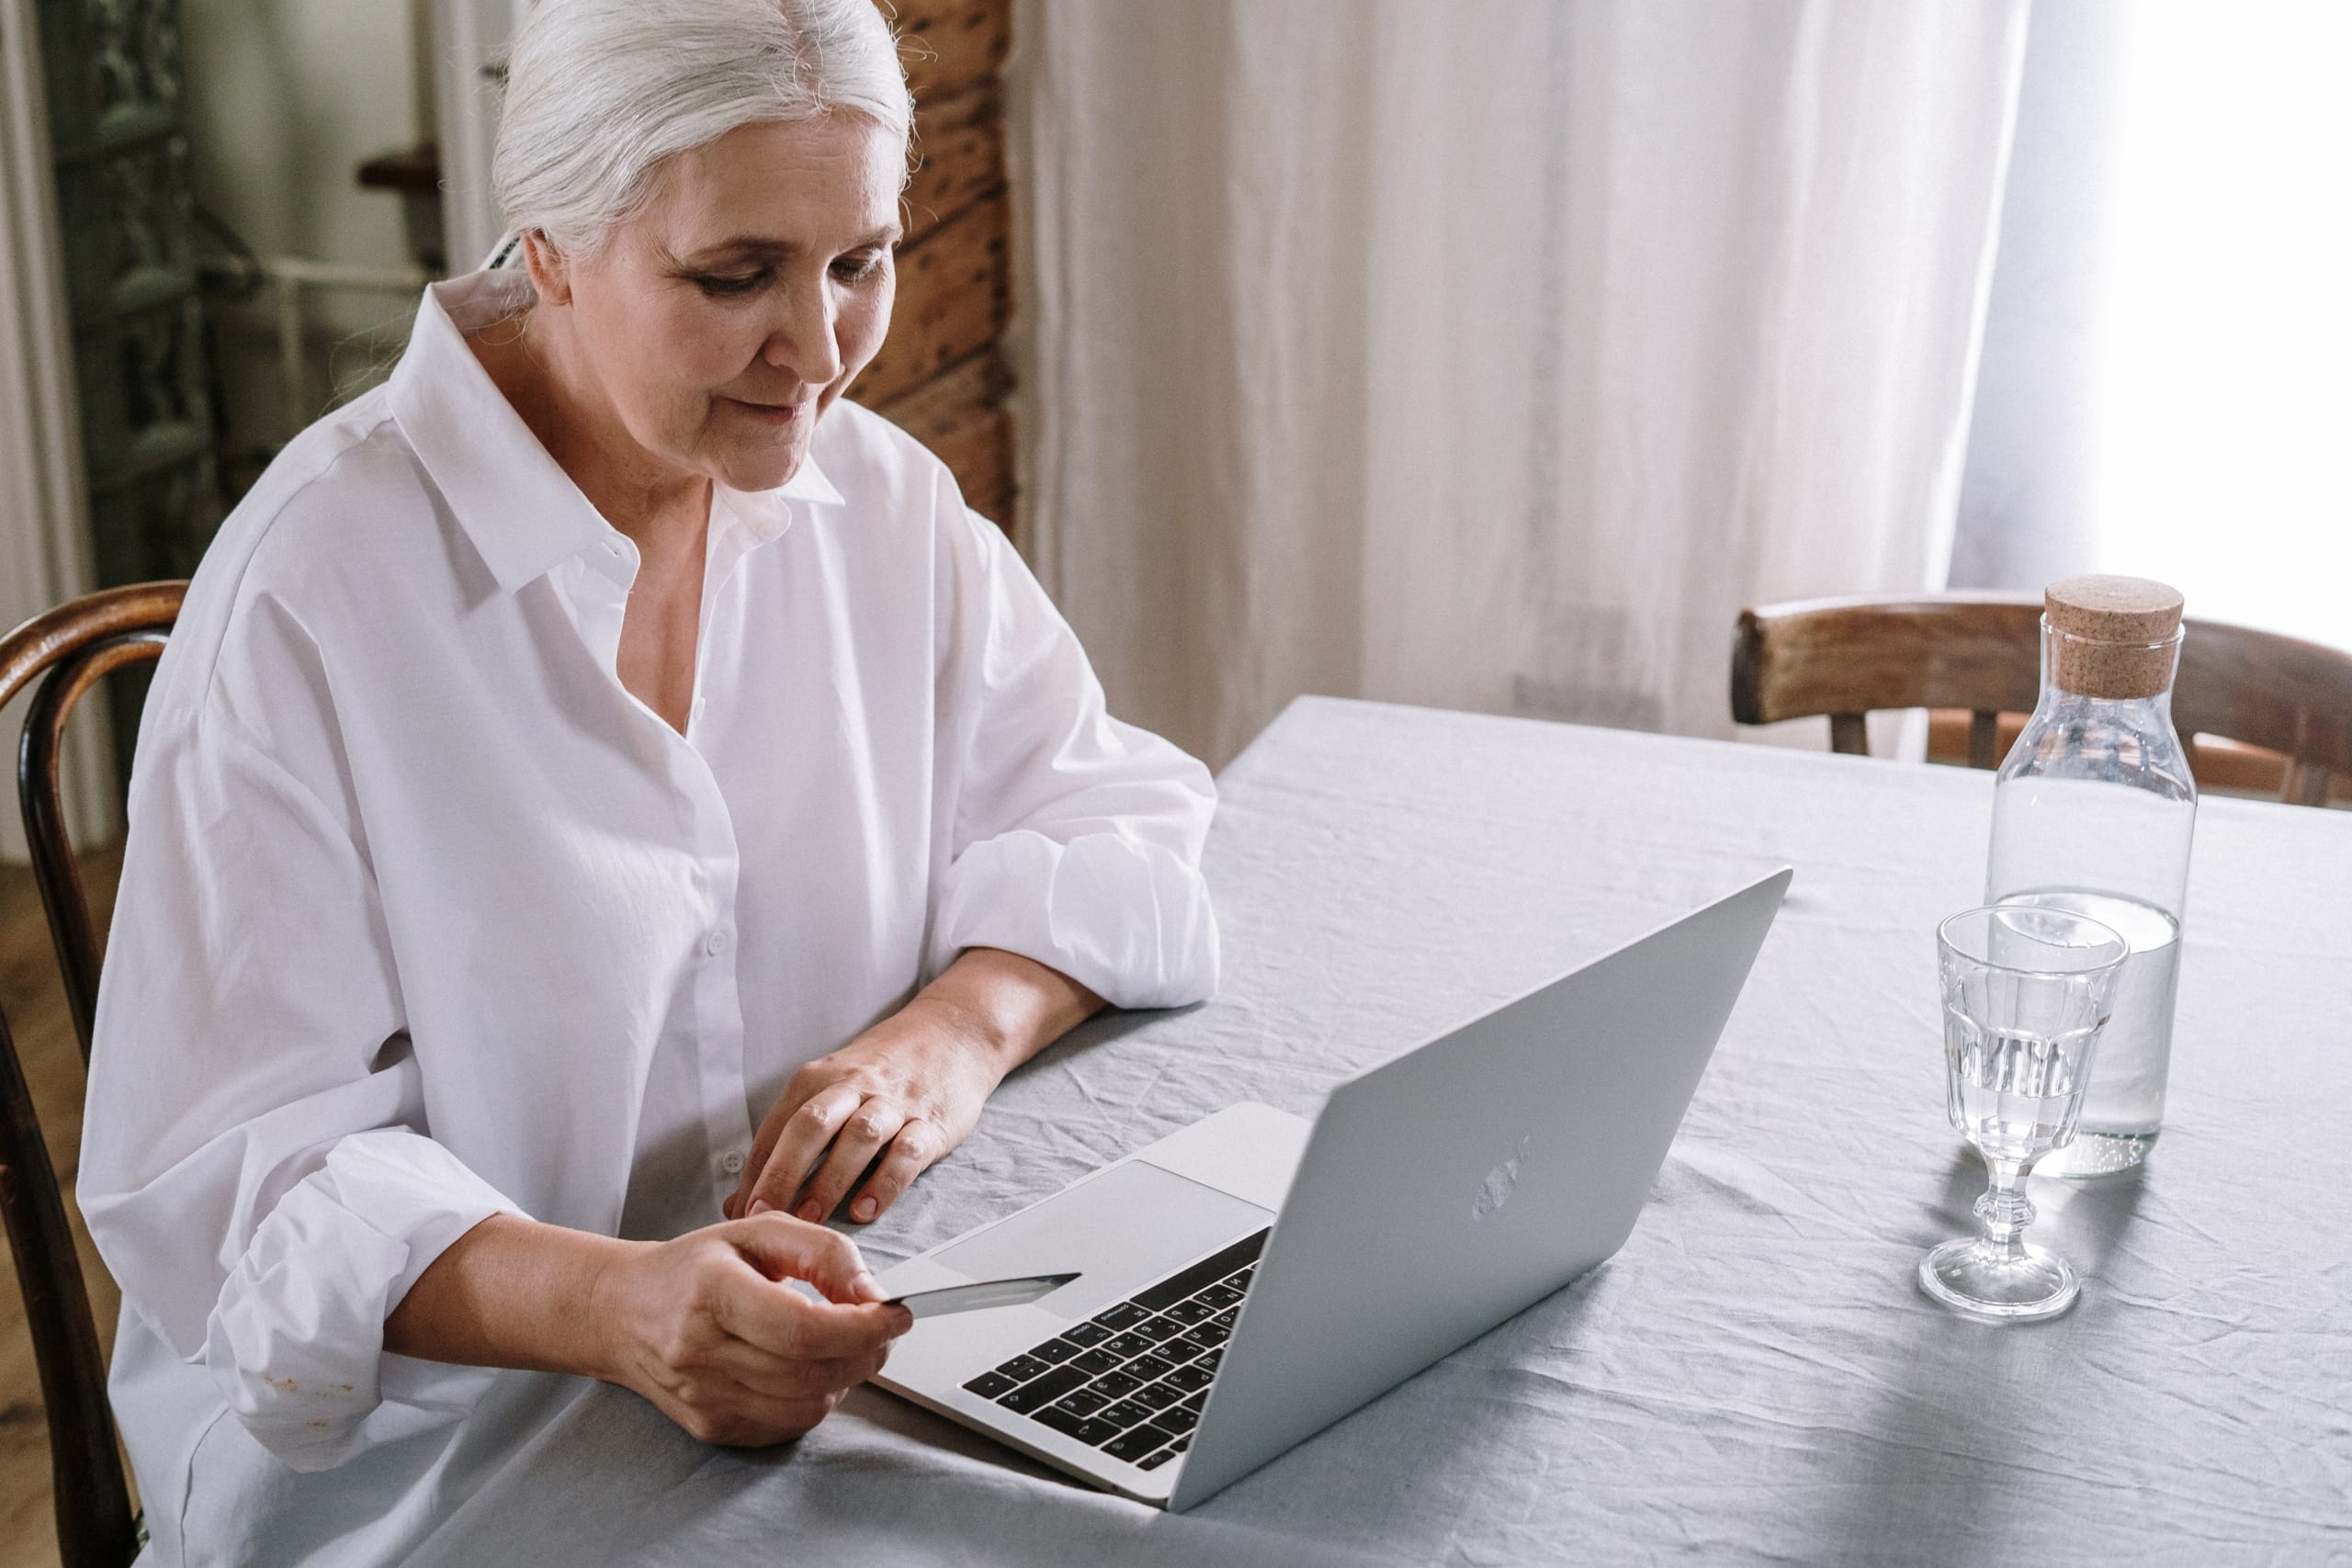 How to Teach English to The Elderly Online